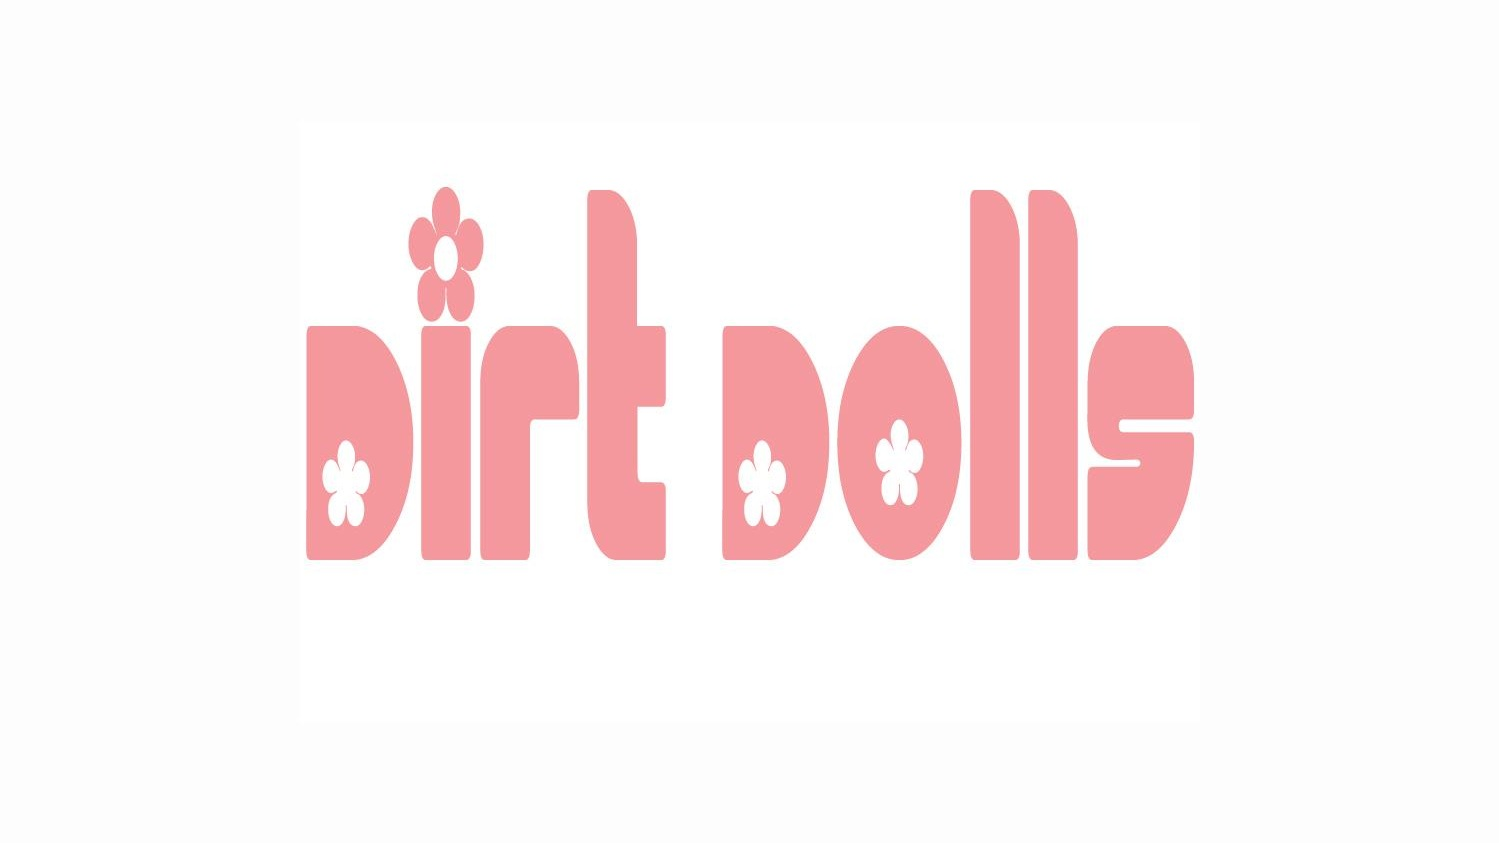 Dirt Dolls Mountain Bike Ride - Monday, May 13 at 5:45 PM. Meet at Camel's Back Park by the tennis courts. We'll break into groups for a shorter ride, expecting to be on the trails no later than 6:00. Afterwards, we will ride to Highlands Hollow to join the Boise Bike Week festivities. View the Dirt Dolls event here.